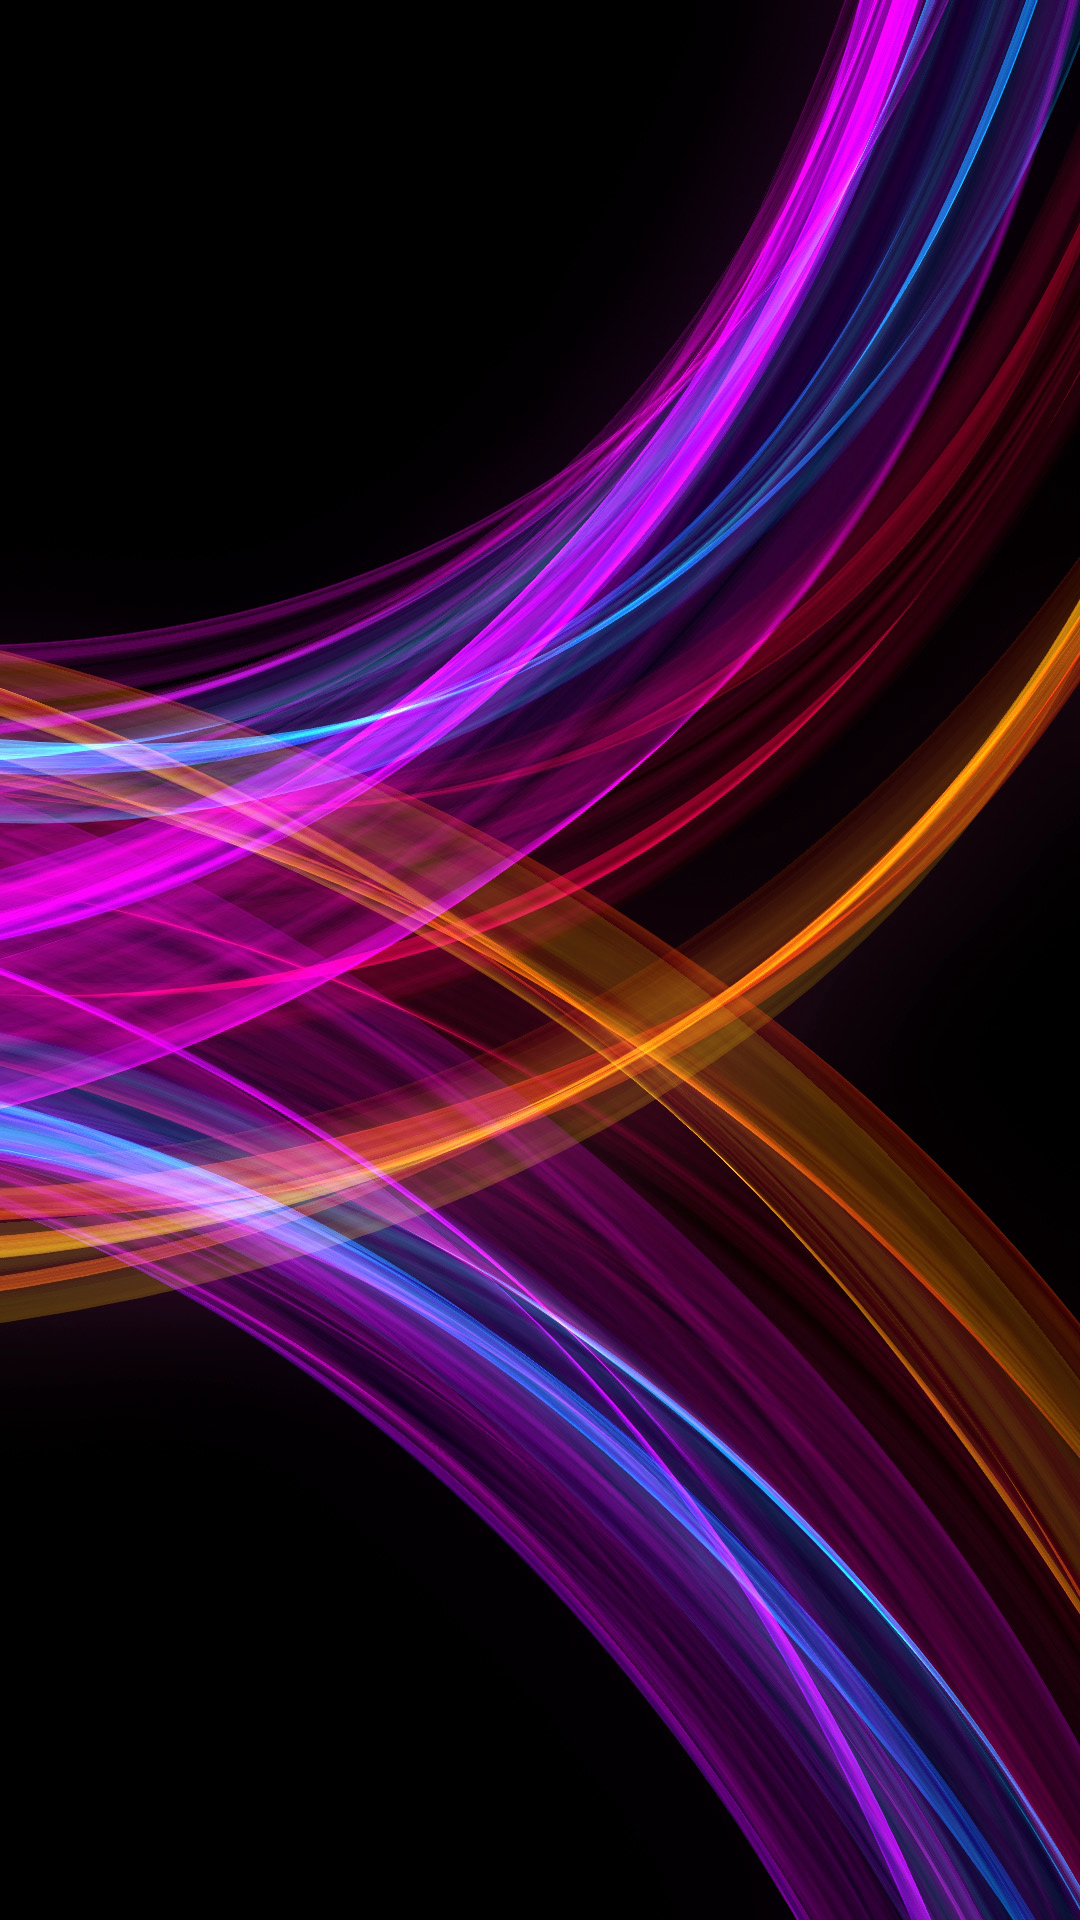 AMOLED neon waves [1080x1920] live wallpaper in comments Download at: http:/